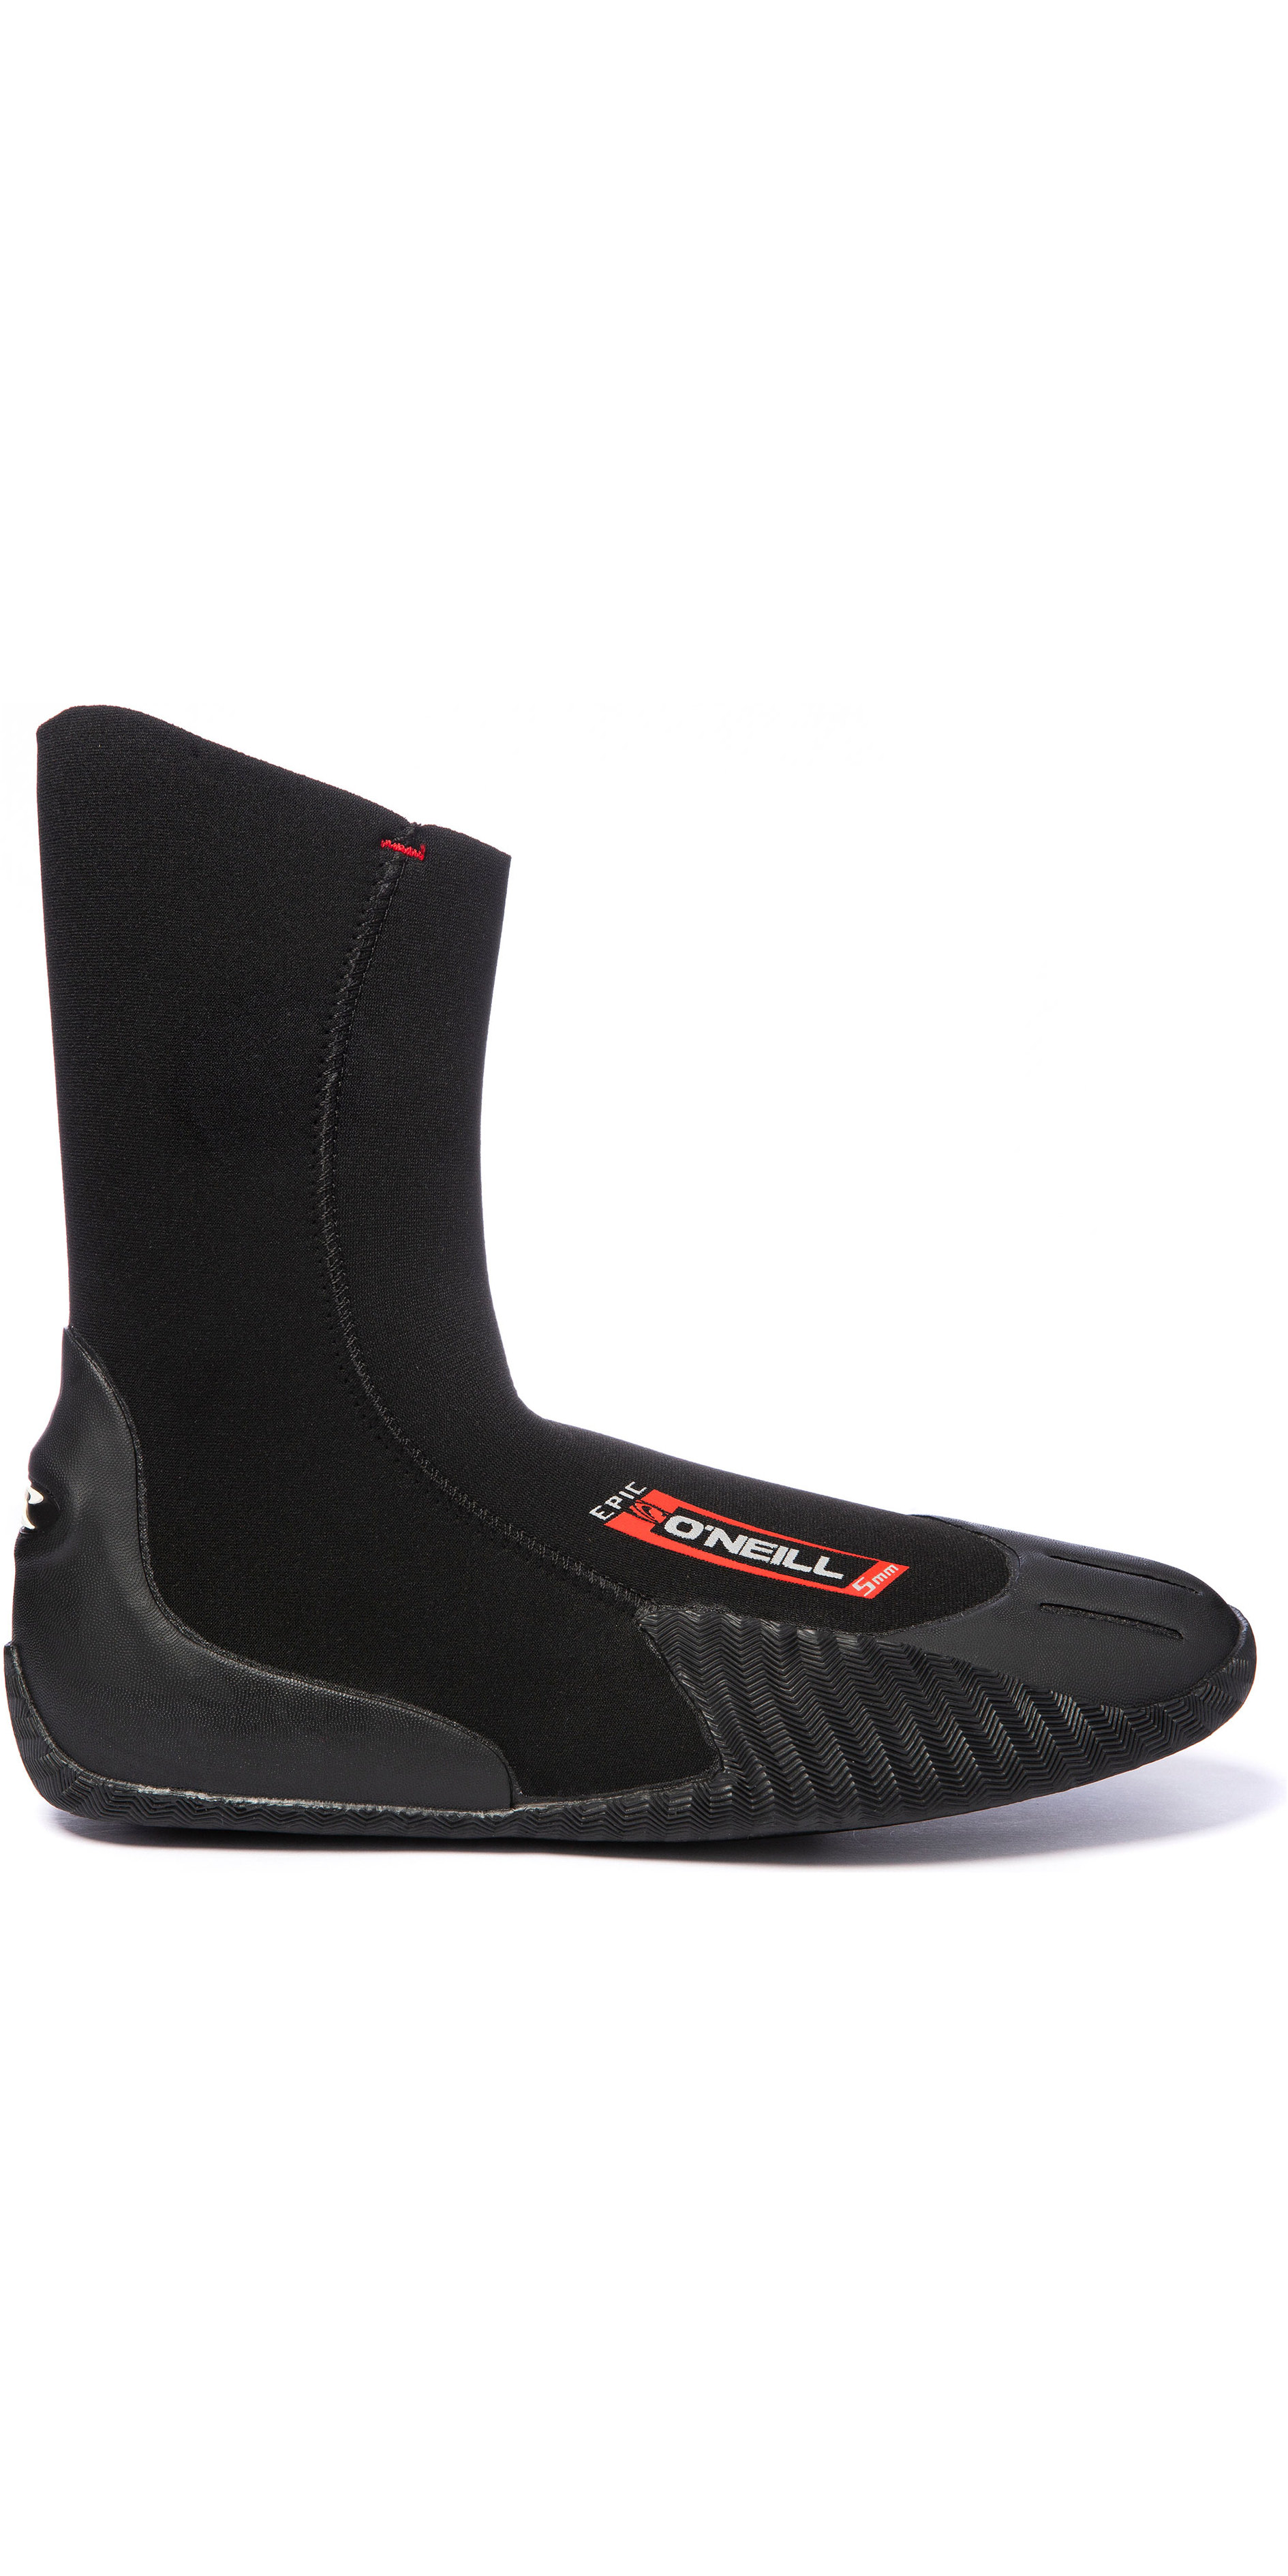 2019 O'Neill Epic 5mm Round Toe Boots 3405 - Black